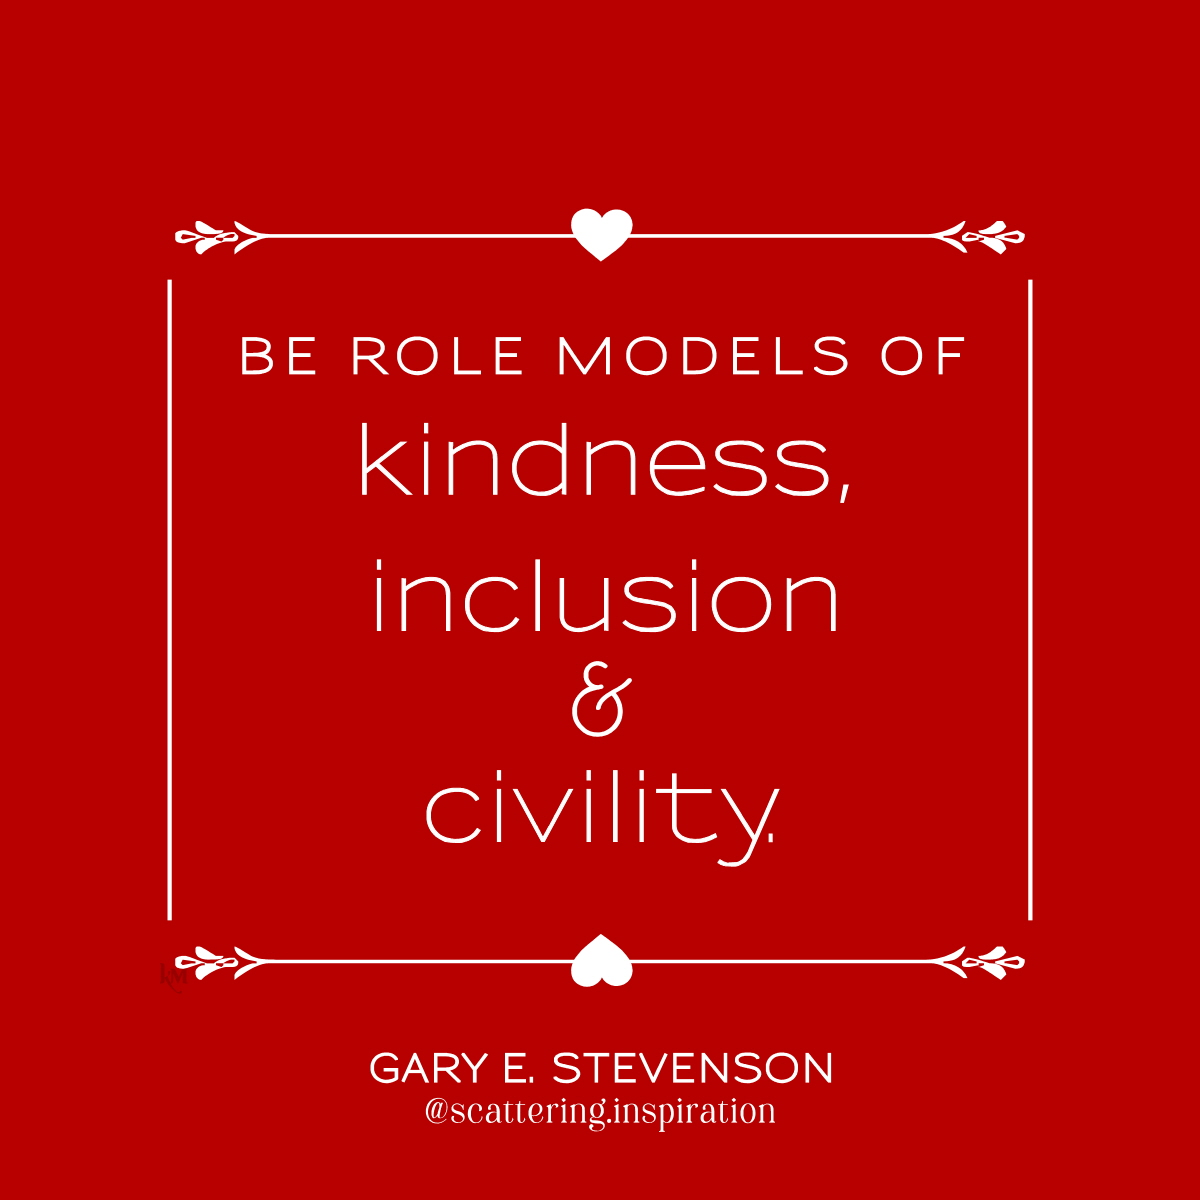 be role models